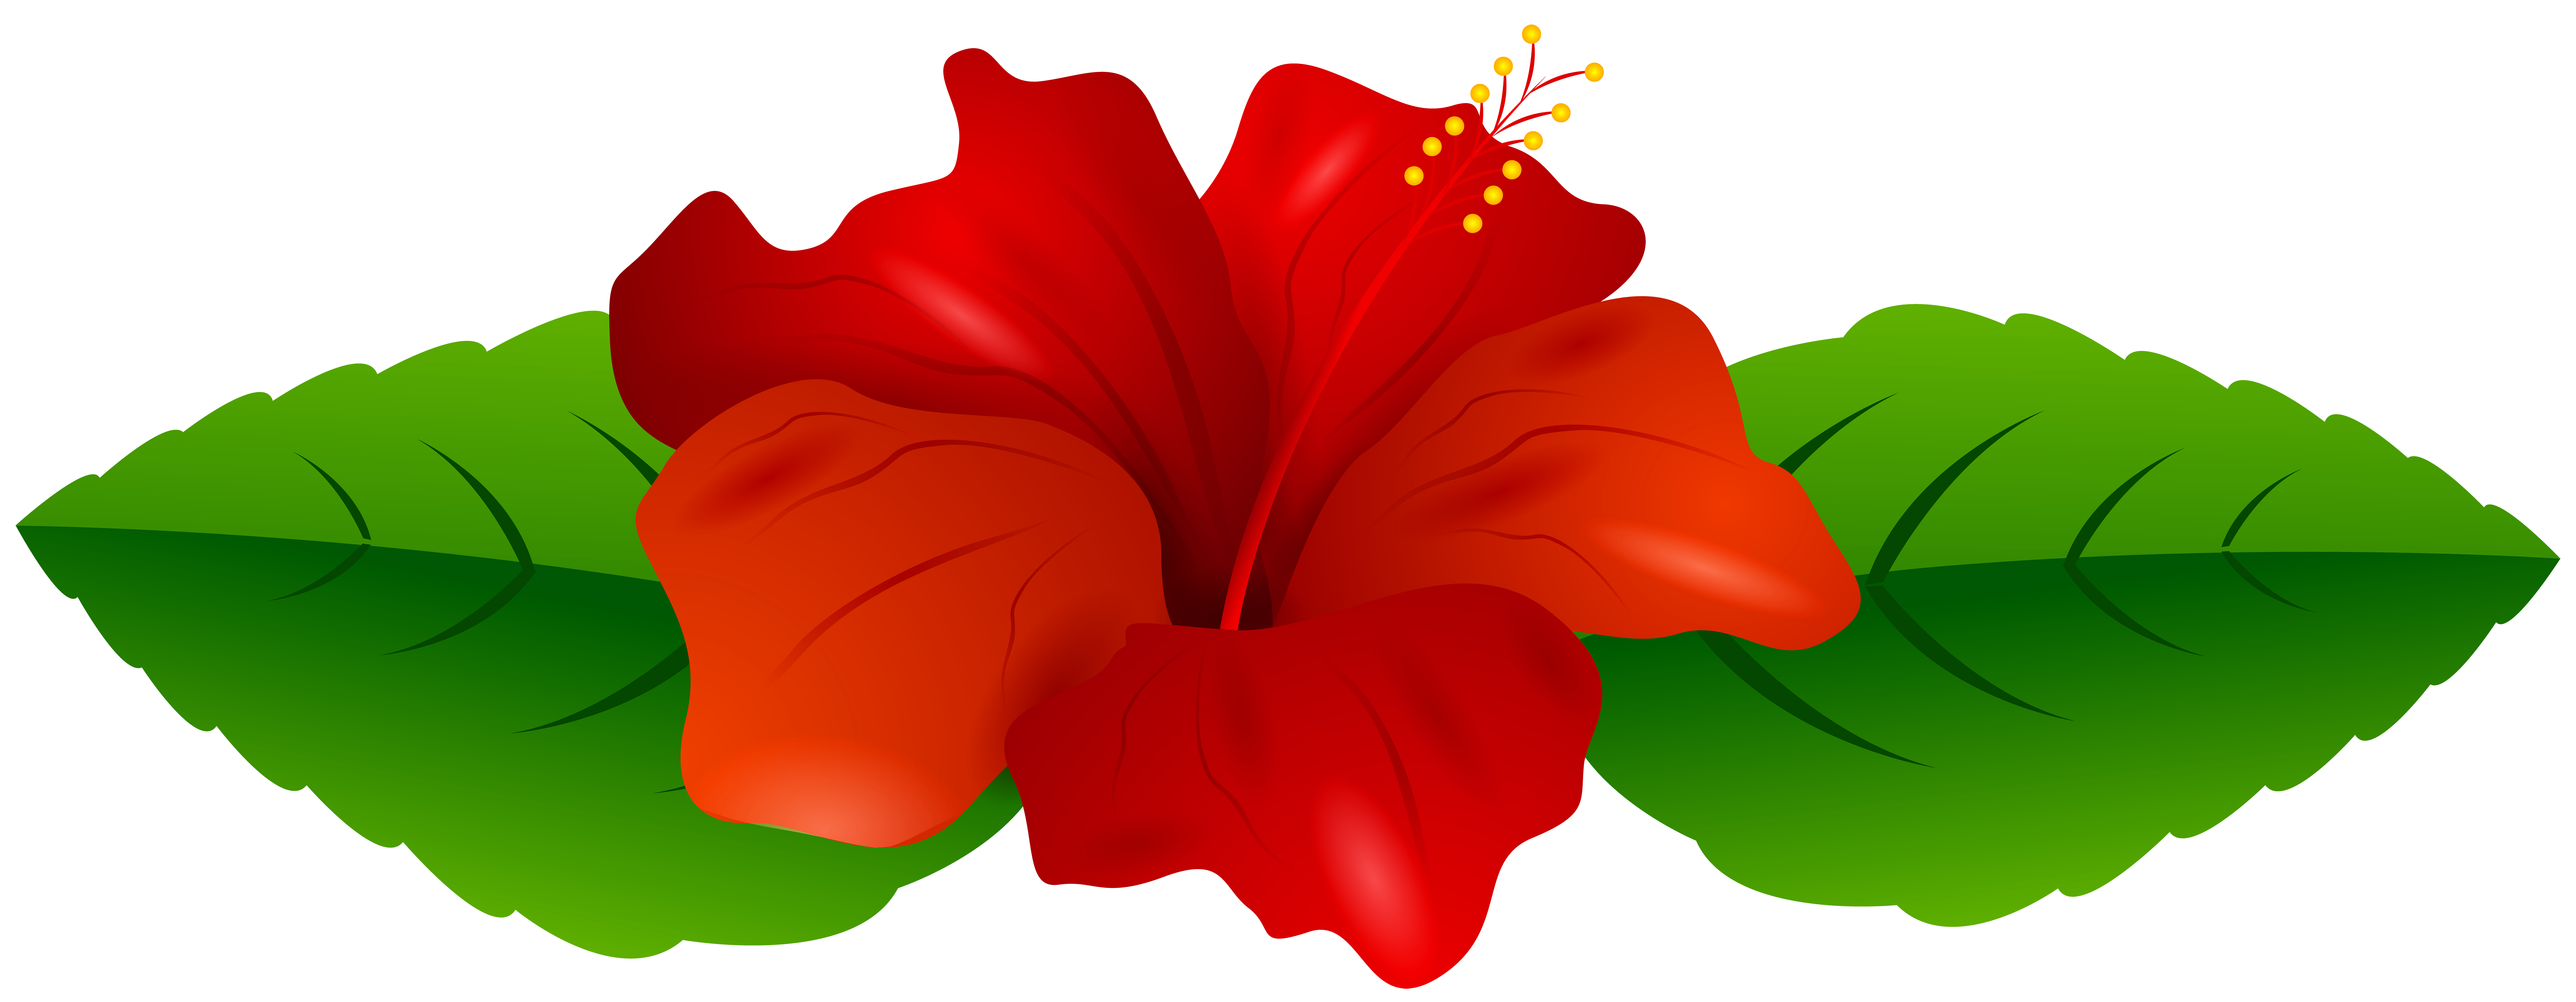 Hibiscus clipart real. Red transparent png clip